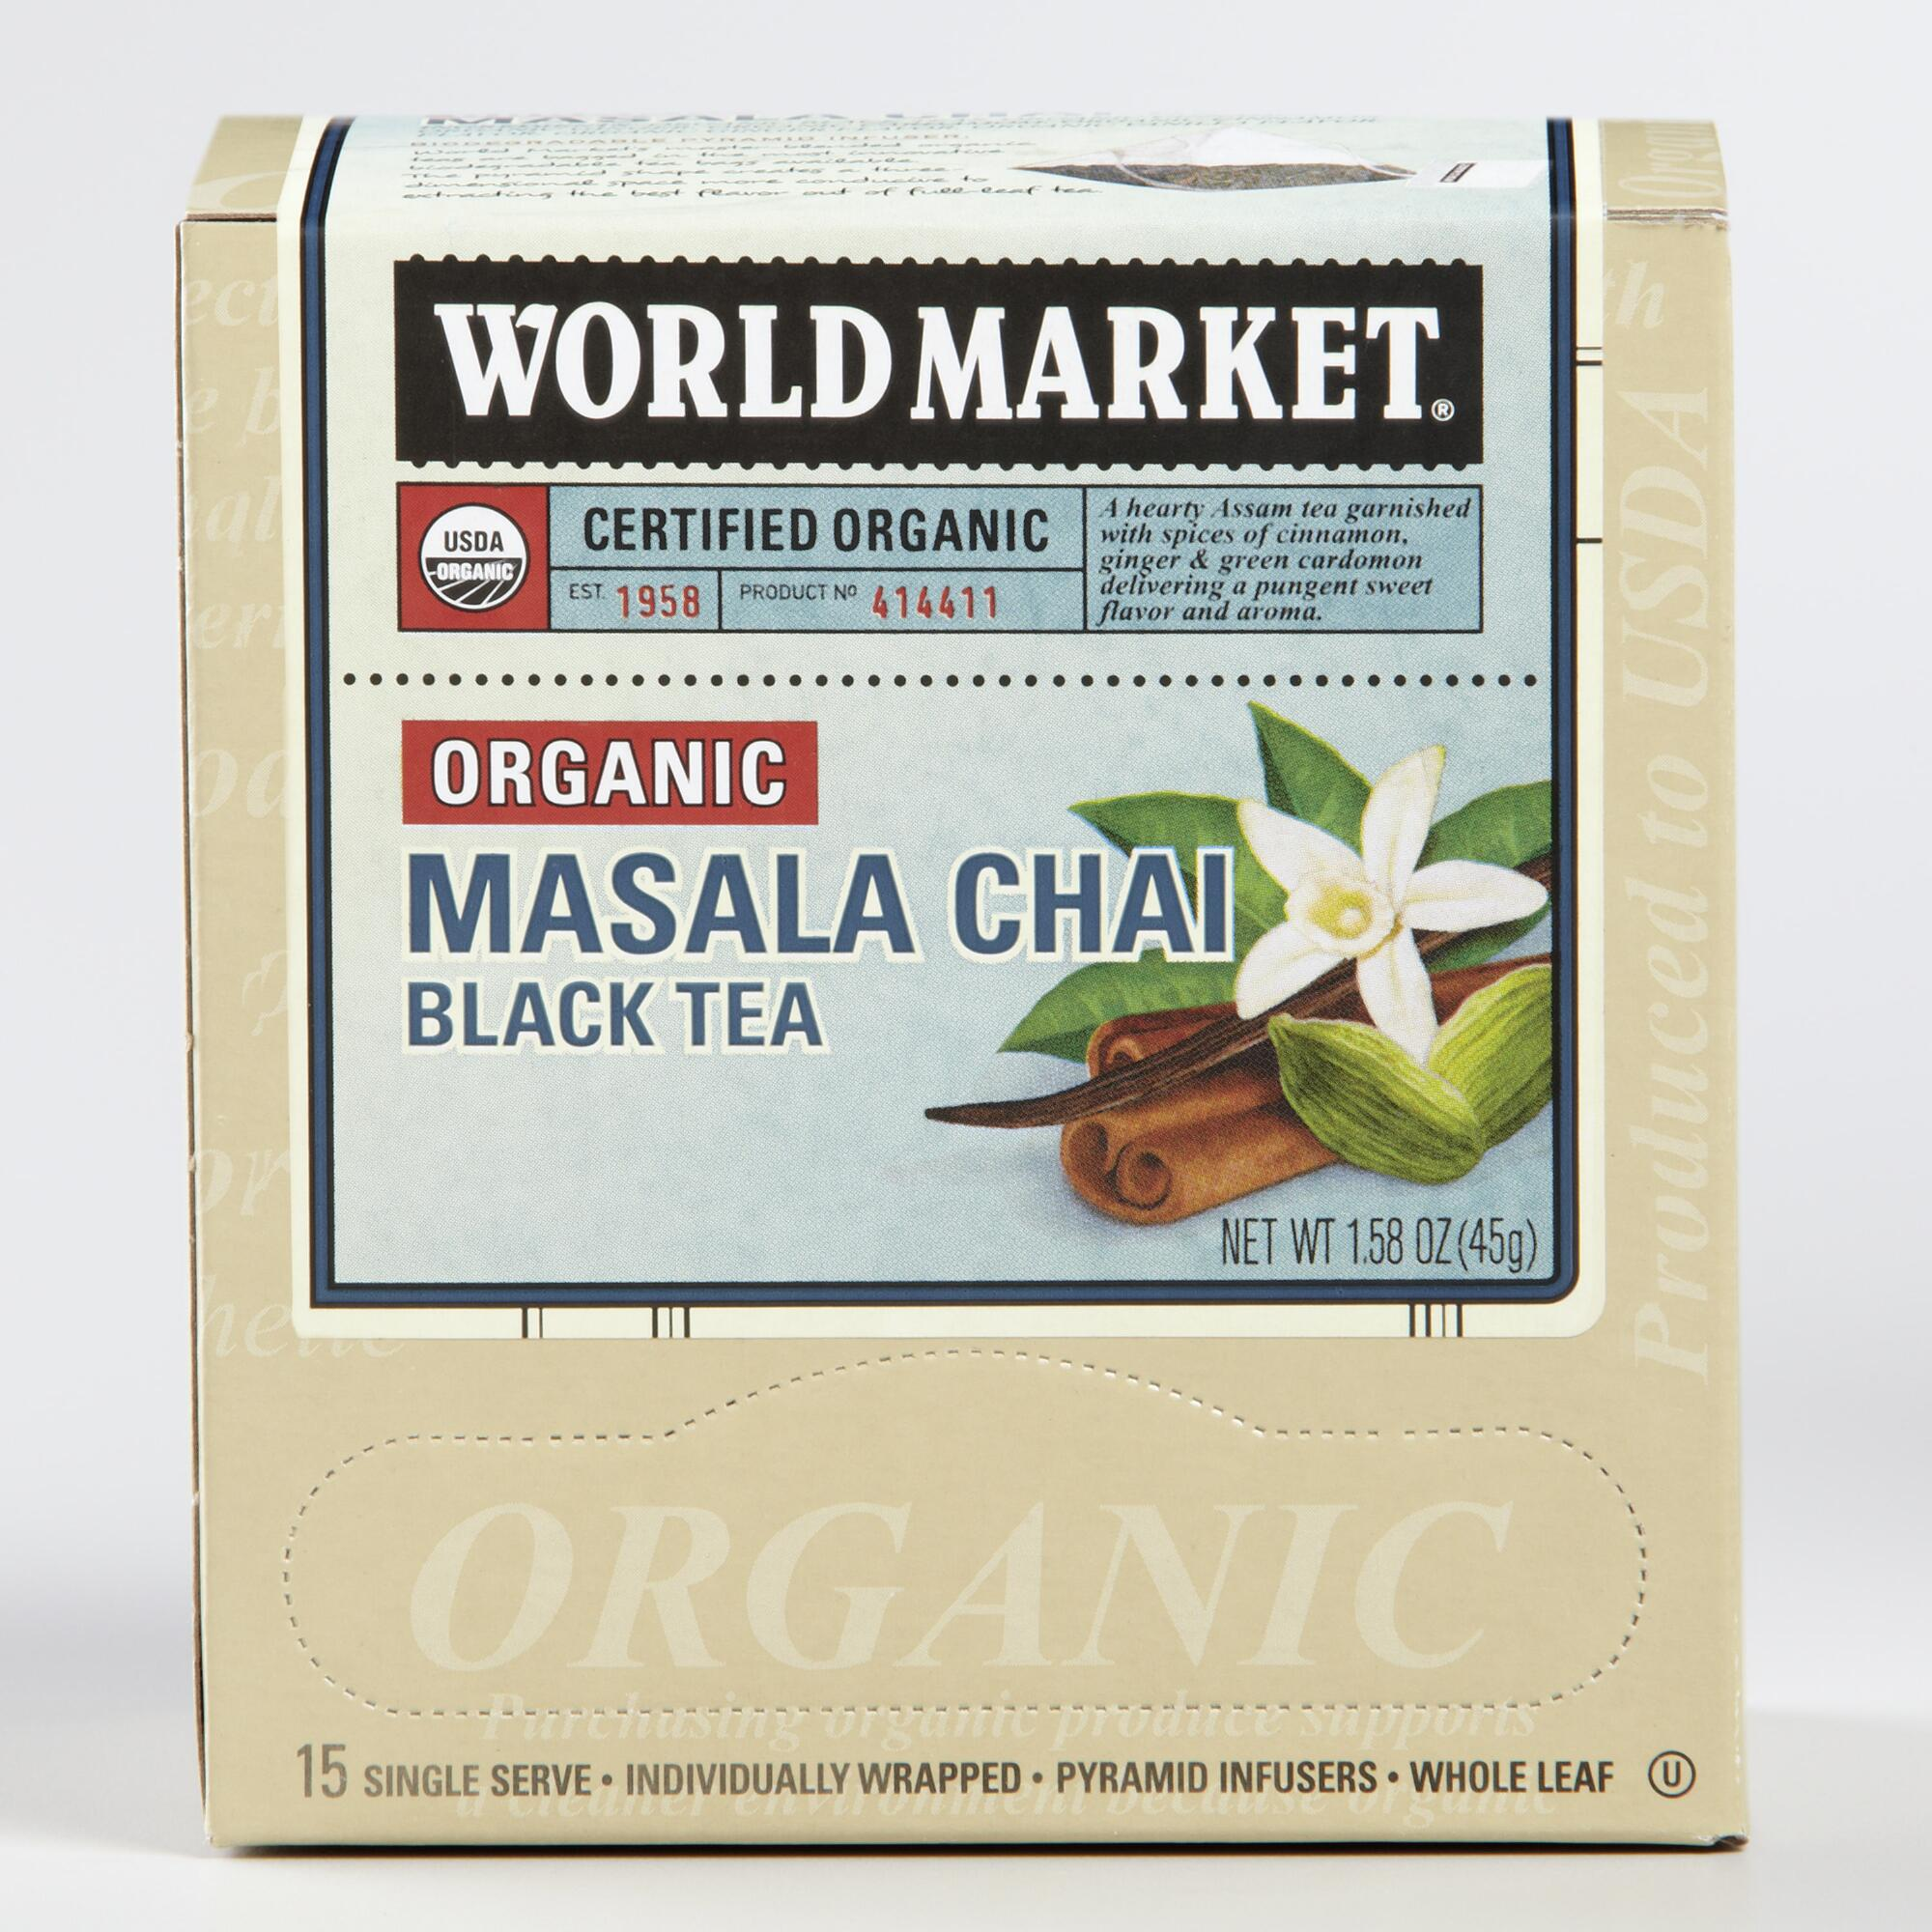 World Market® Organic Masala Chai Black Tea, Set of 6 | World Market